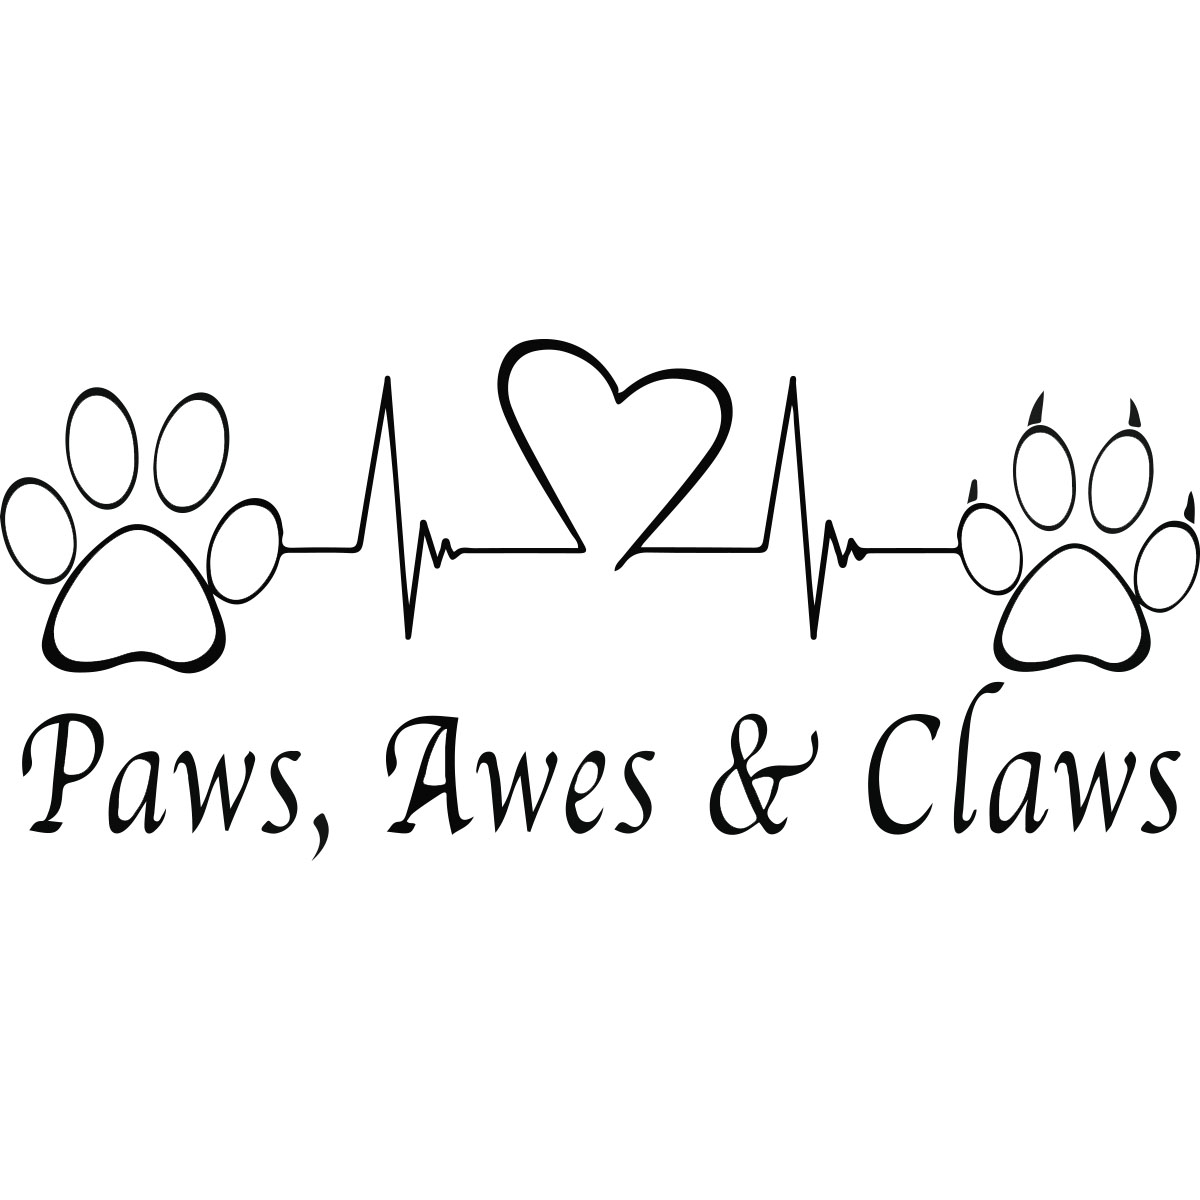 Paws, Awes & Claws